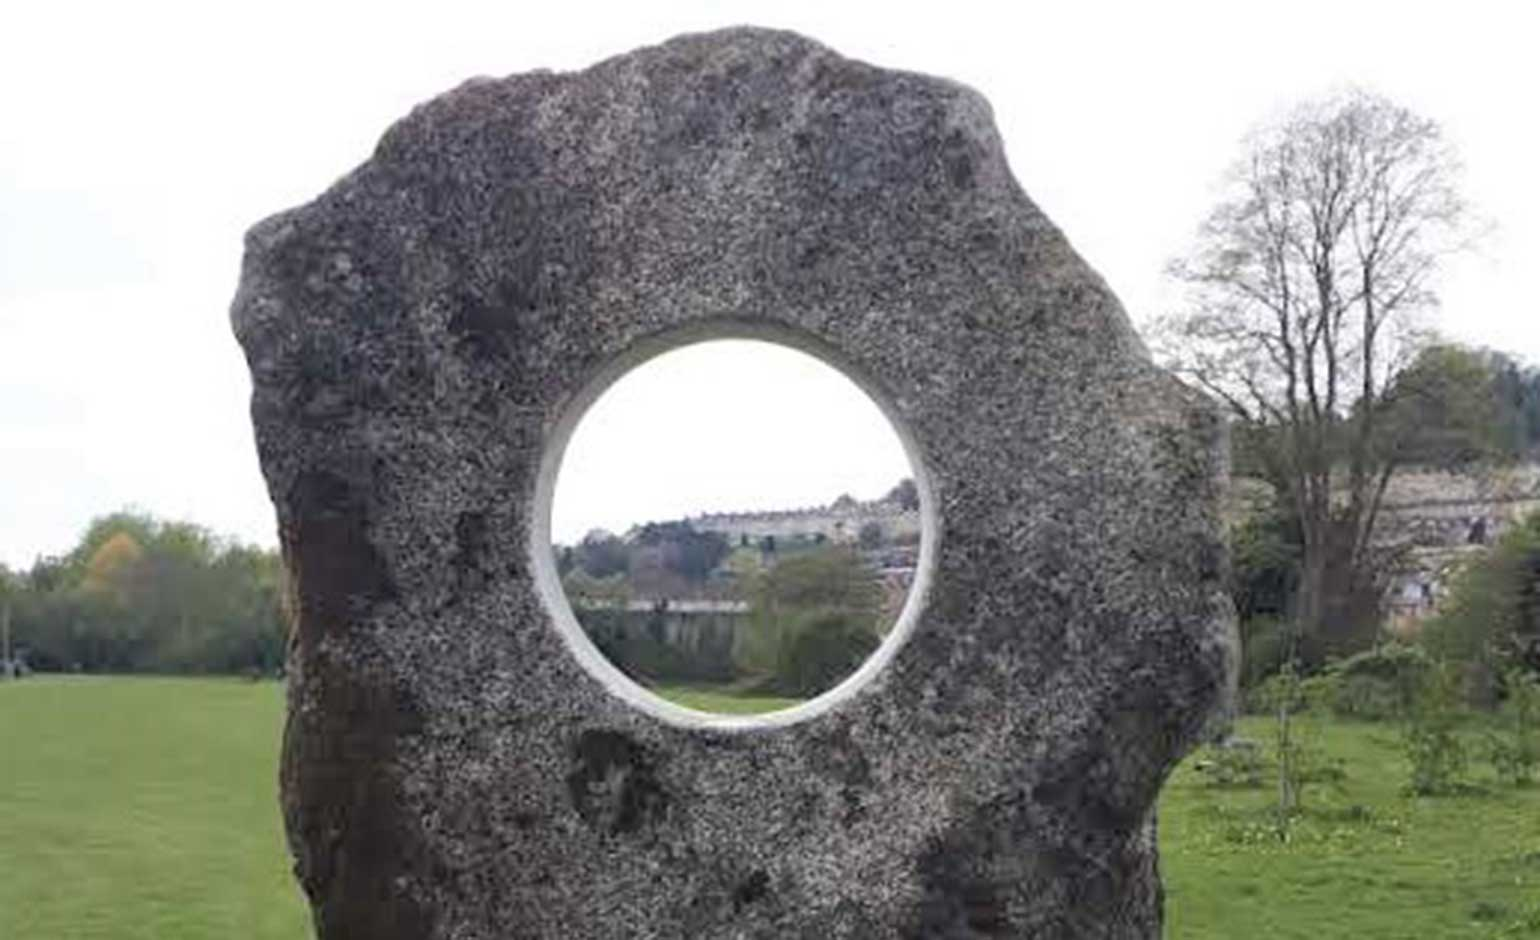 Monolith installed in Kensington Meadows as part of improvement scheme